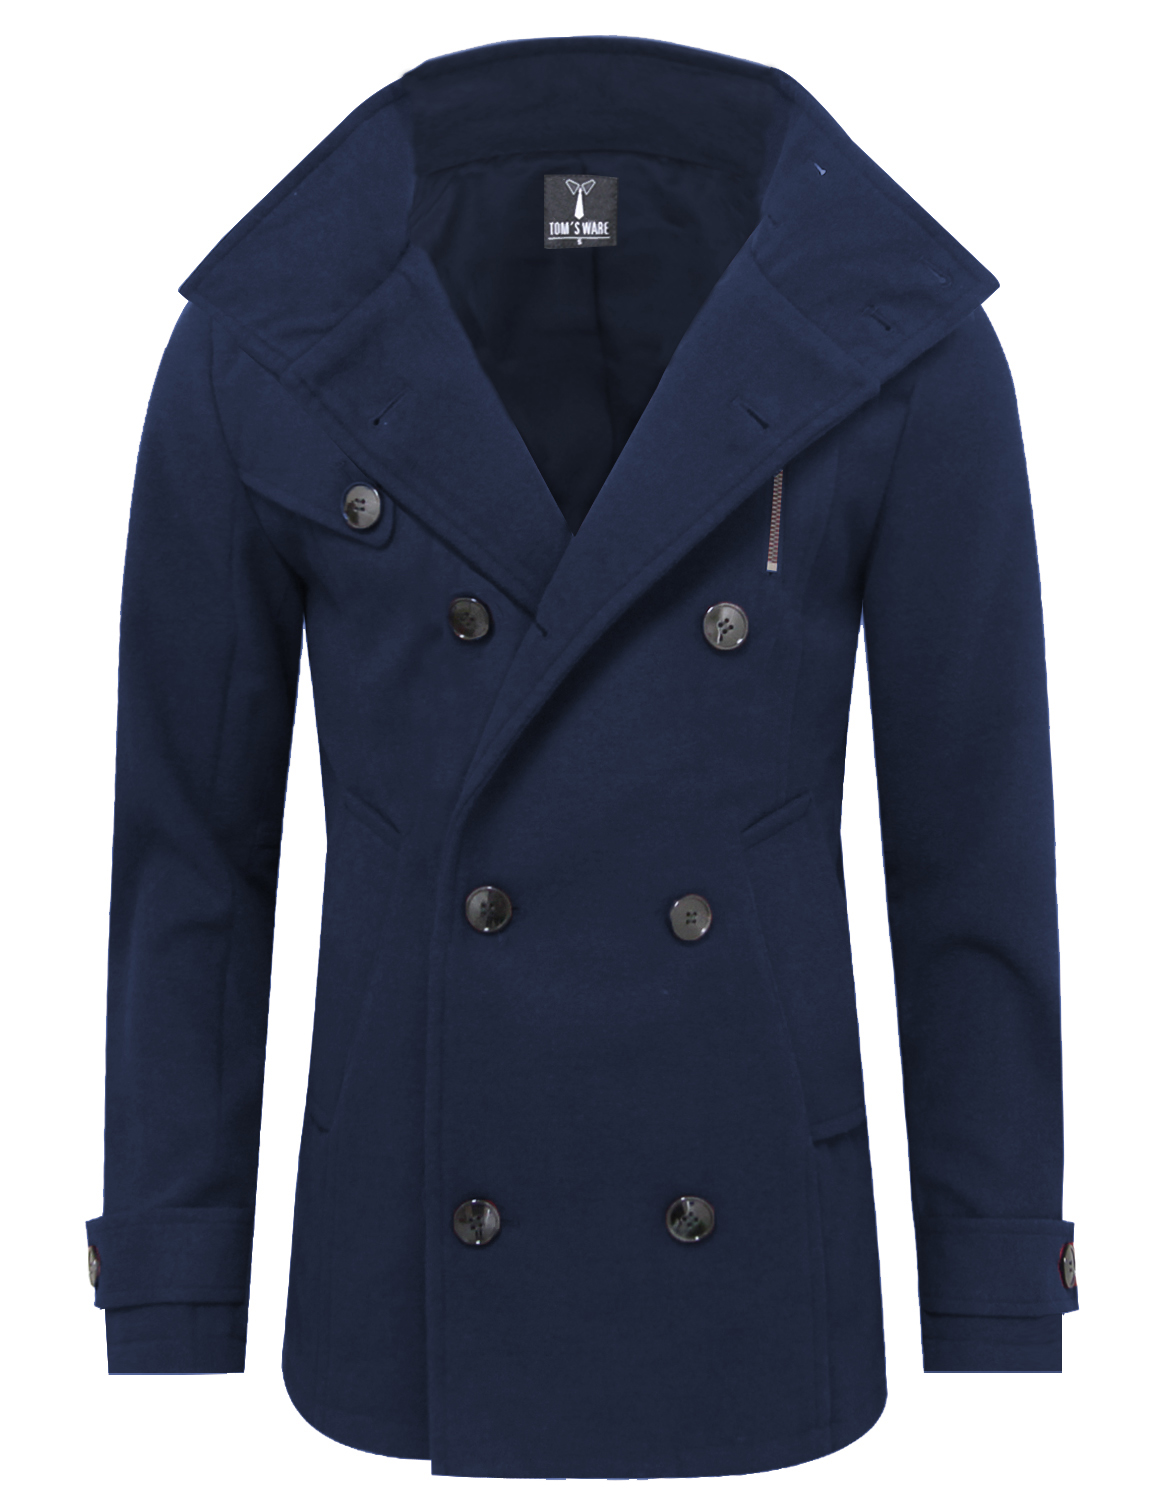 TAM WARE Mens Stylish Fashion Classic Wool Double Breasted Pea Coat by TAM WARE